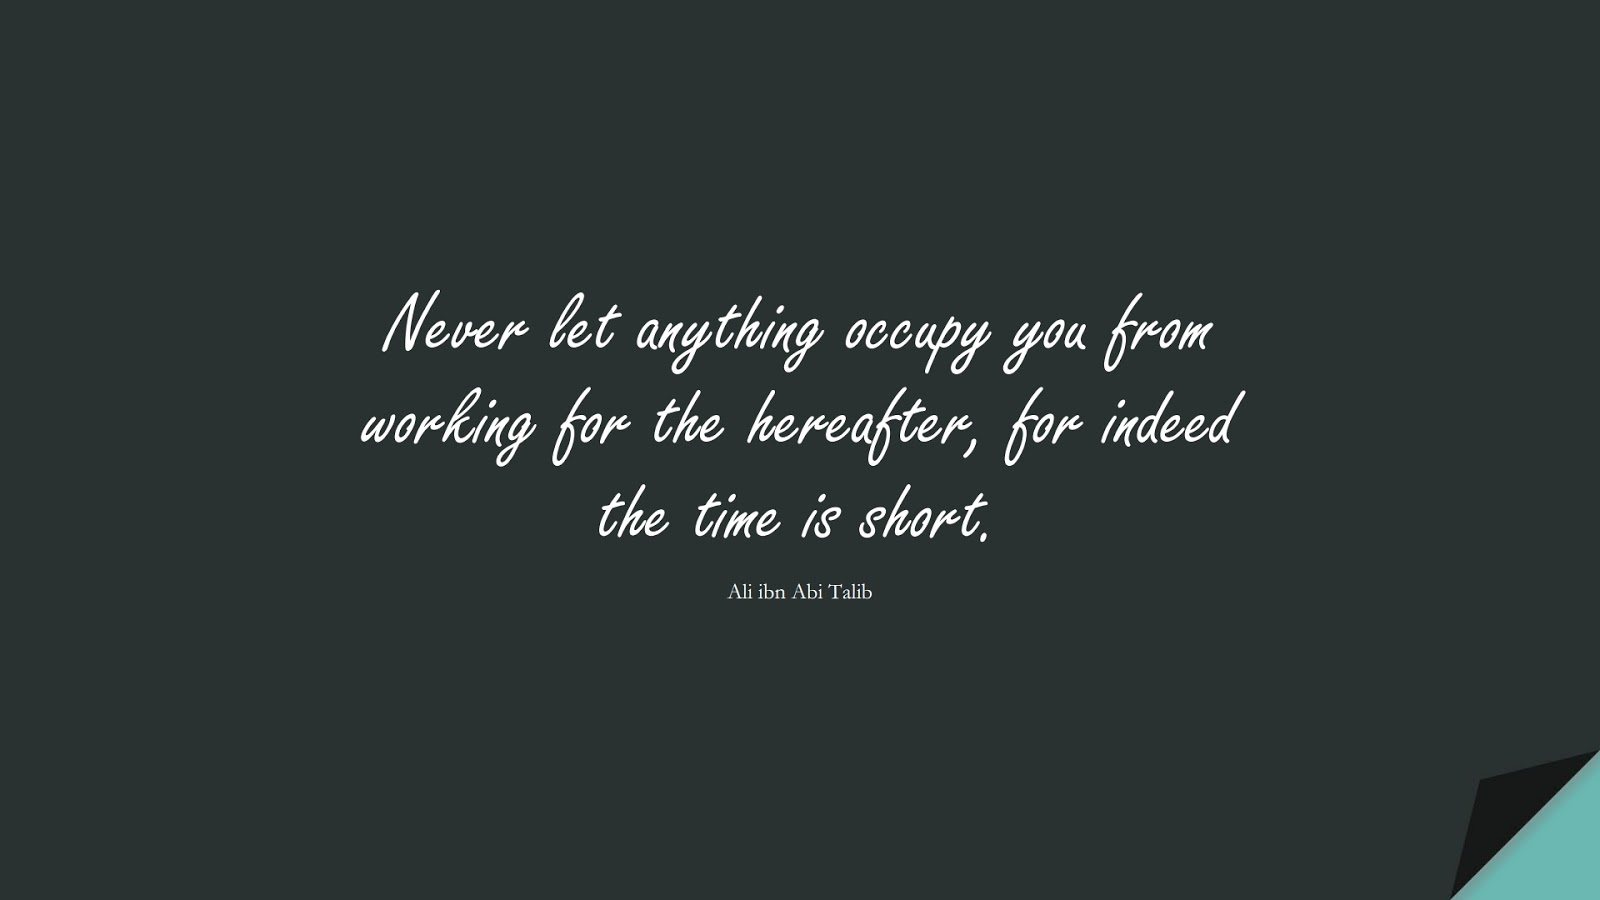 Never let anything occupy you from working for the hereafter, for indeed the time is short. (Ali ibn Abi Talib);  #AliQuotes